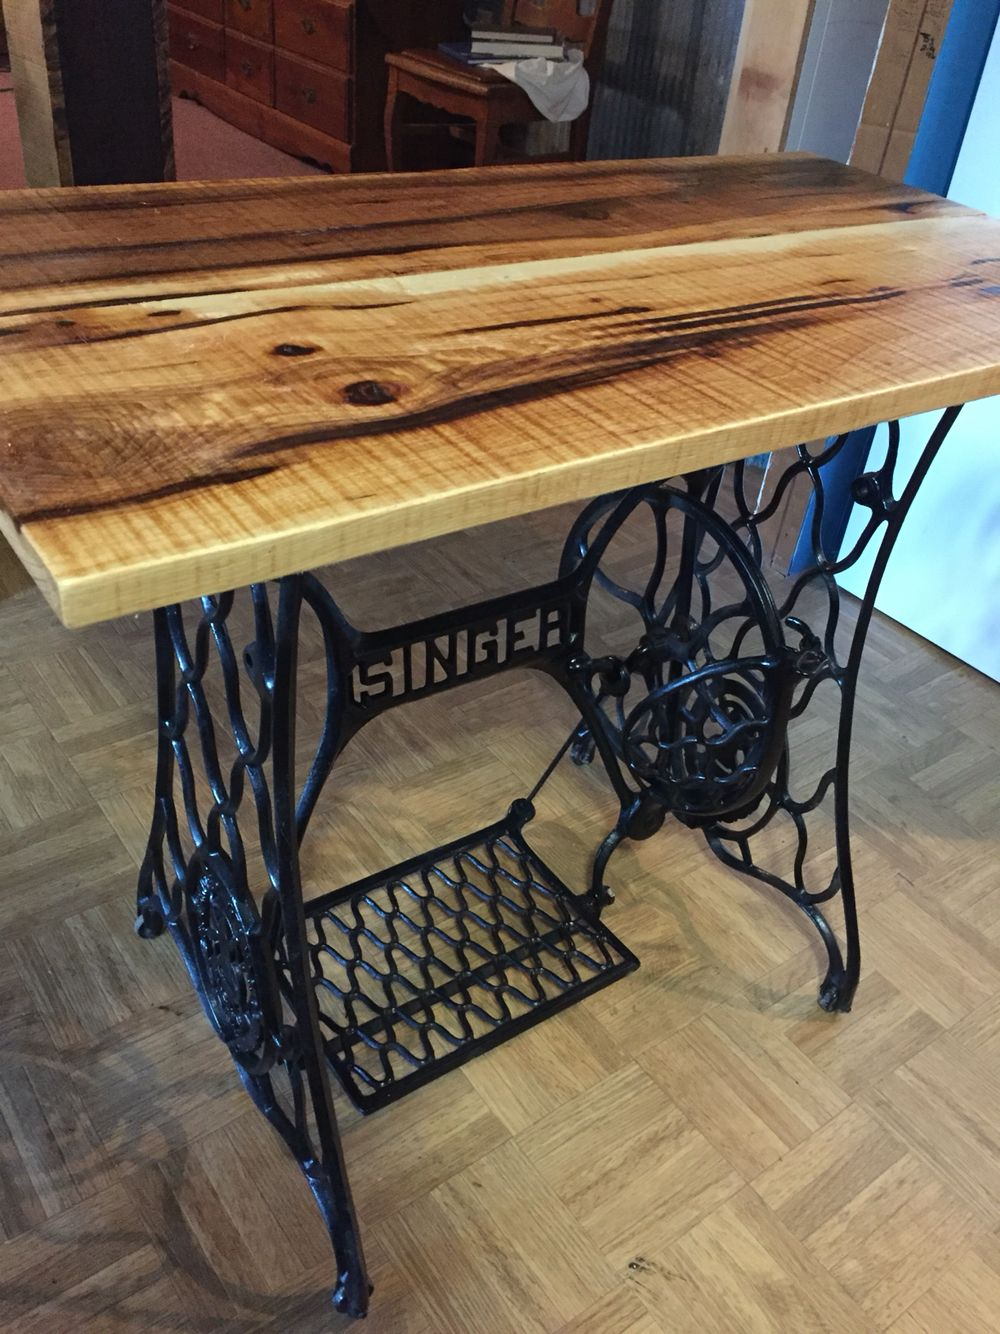 End Table Made From Antique Singer Sewing Machine With Rough Sawed